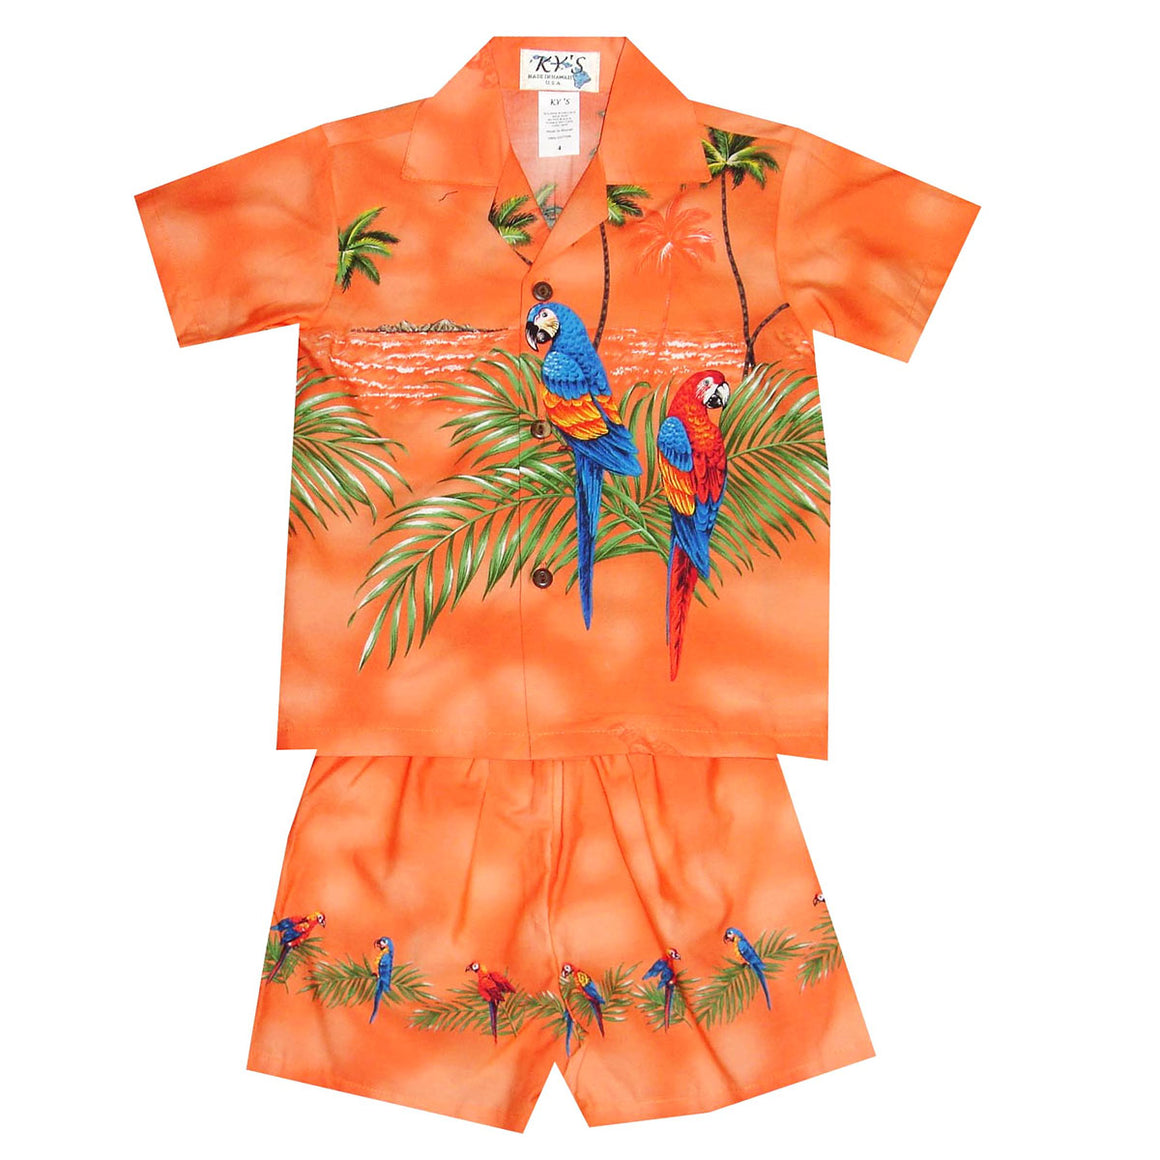 Double Parrot Orange Boy's Hawaiian Shirt and Shorts